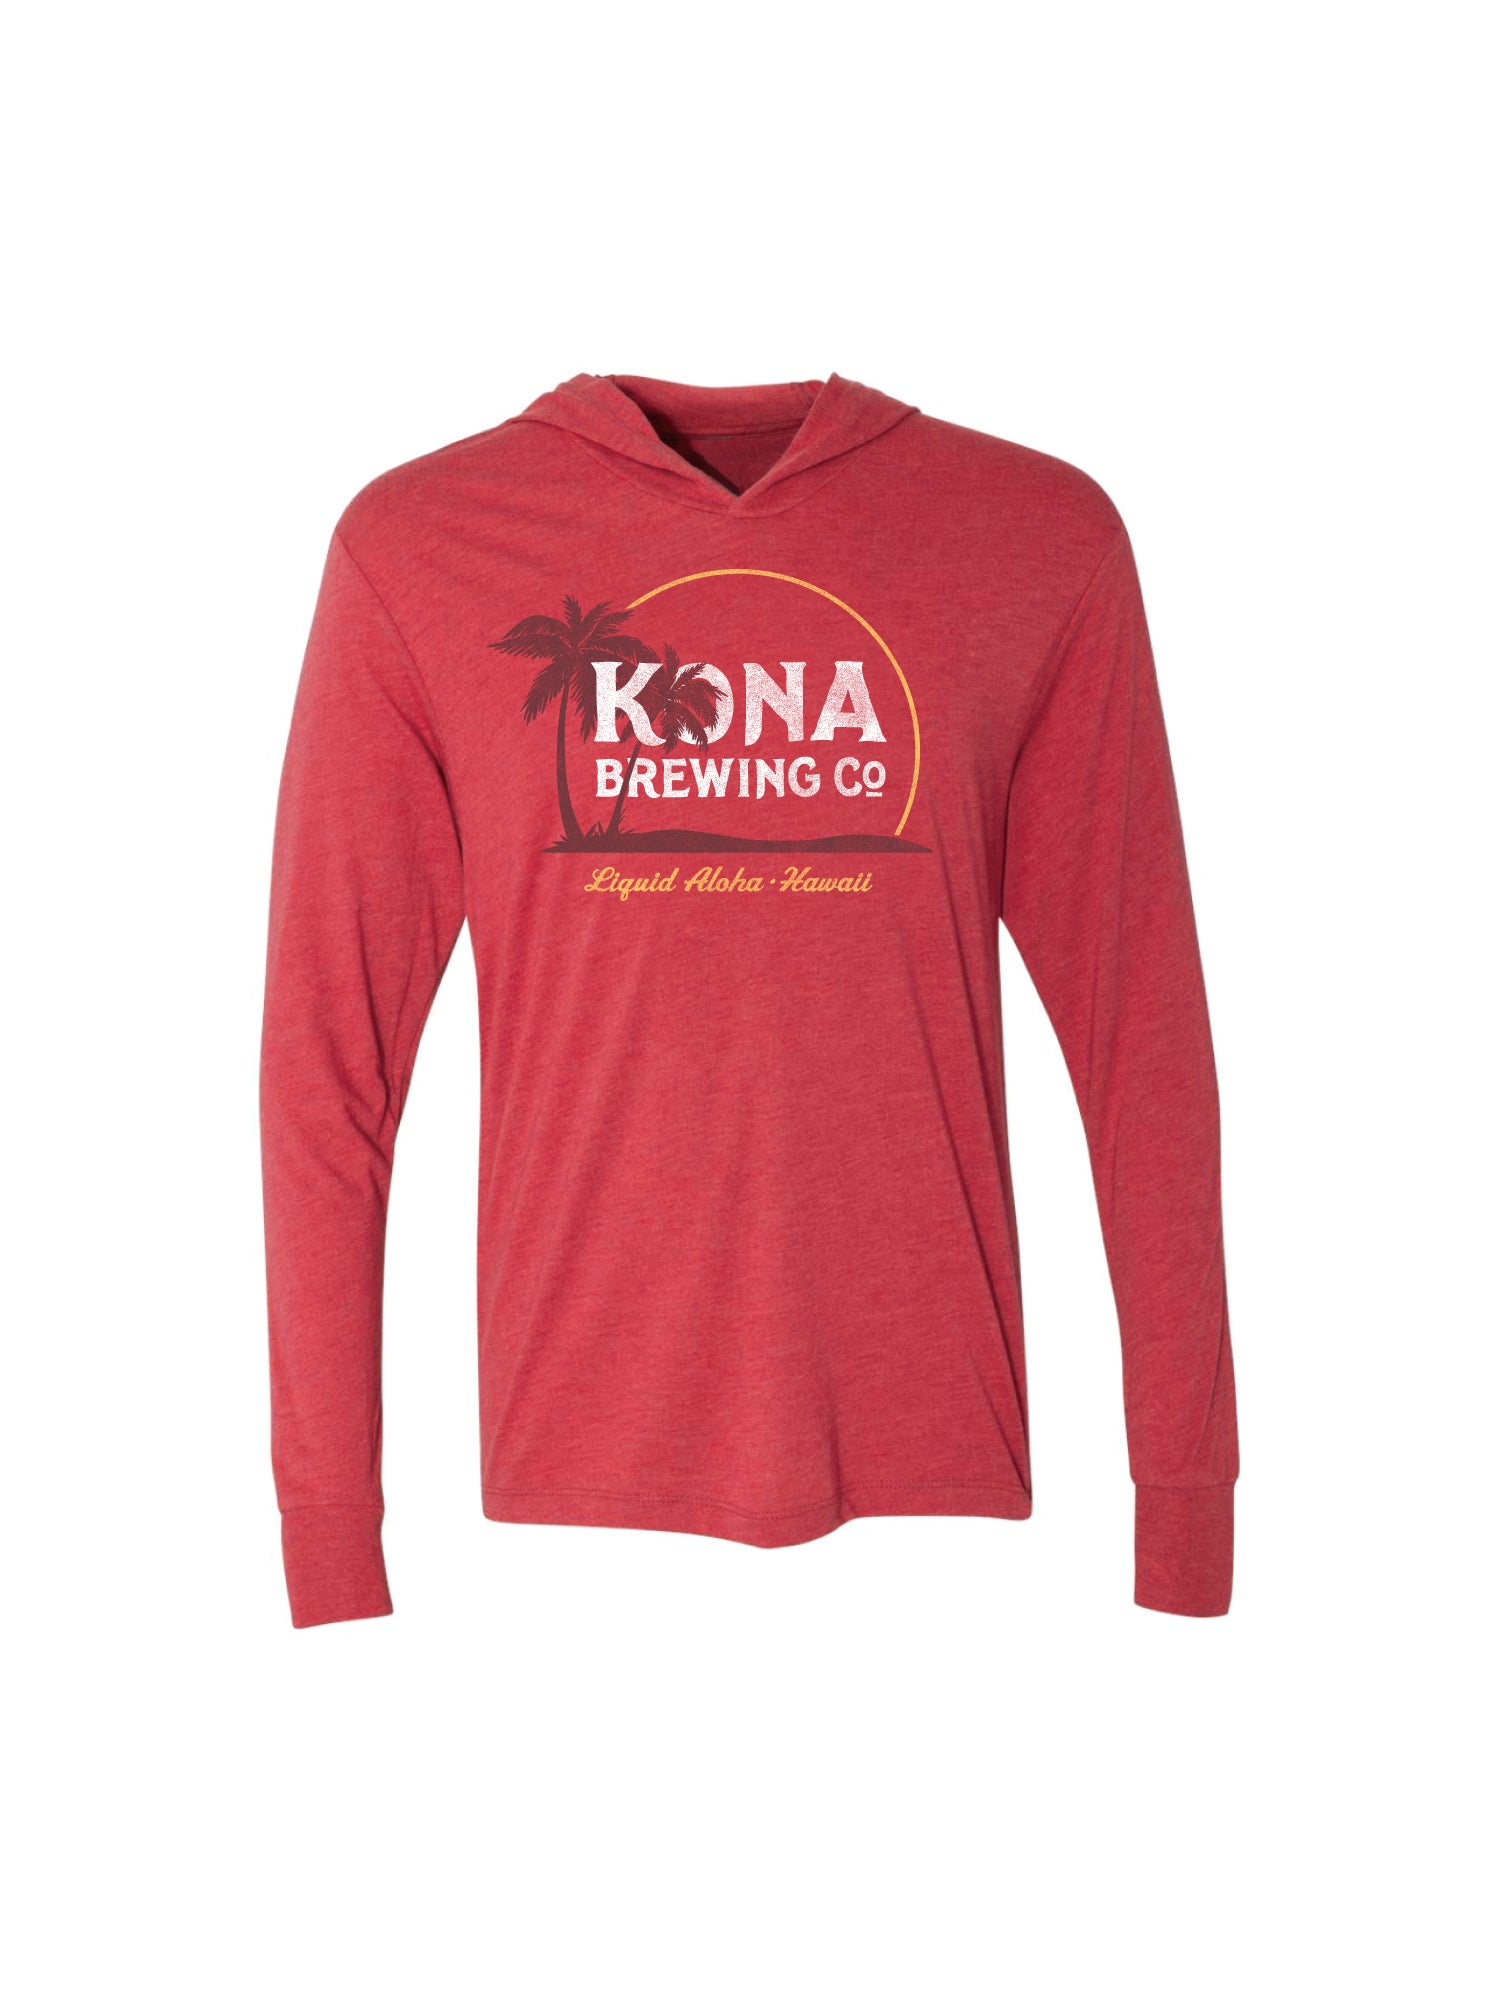 KONA SUNRISE LIGHT WEIGHT PULL OVER- RED - Anderson Bros Design and Supply